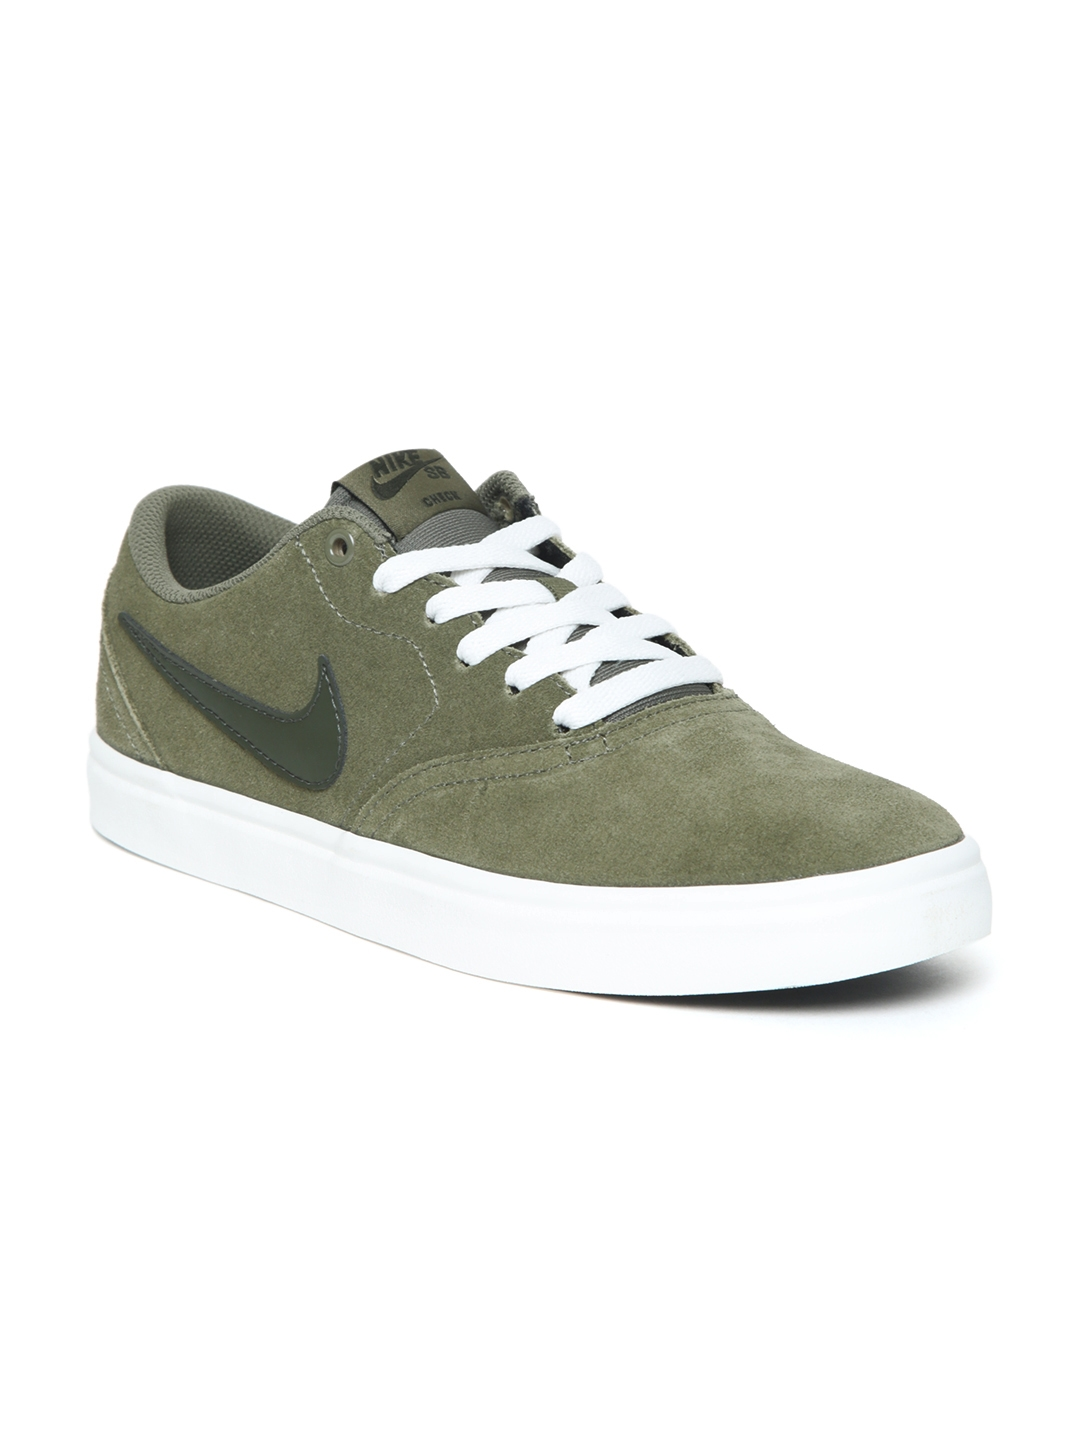 2543e1c00a51 Buy Nike Men Olive Green SB CHECK SOLAR Skate Shoes - Casual Shoes ...